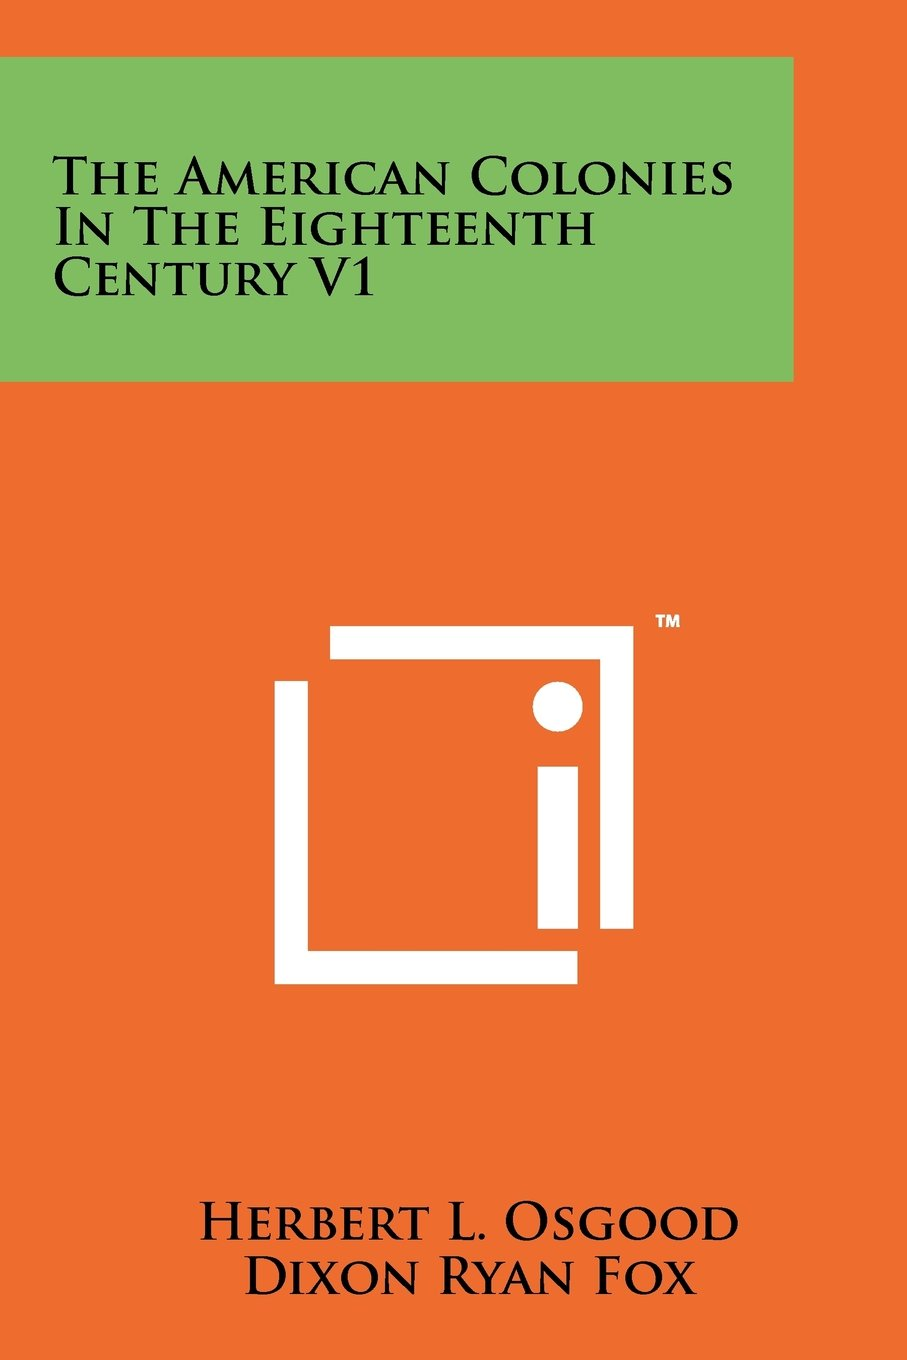 The American Colonies In The Eighteenth Century V1 pdf